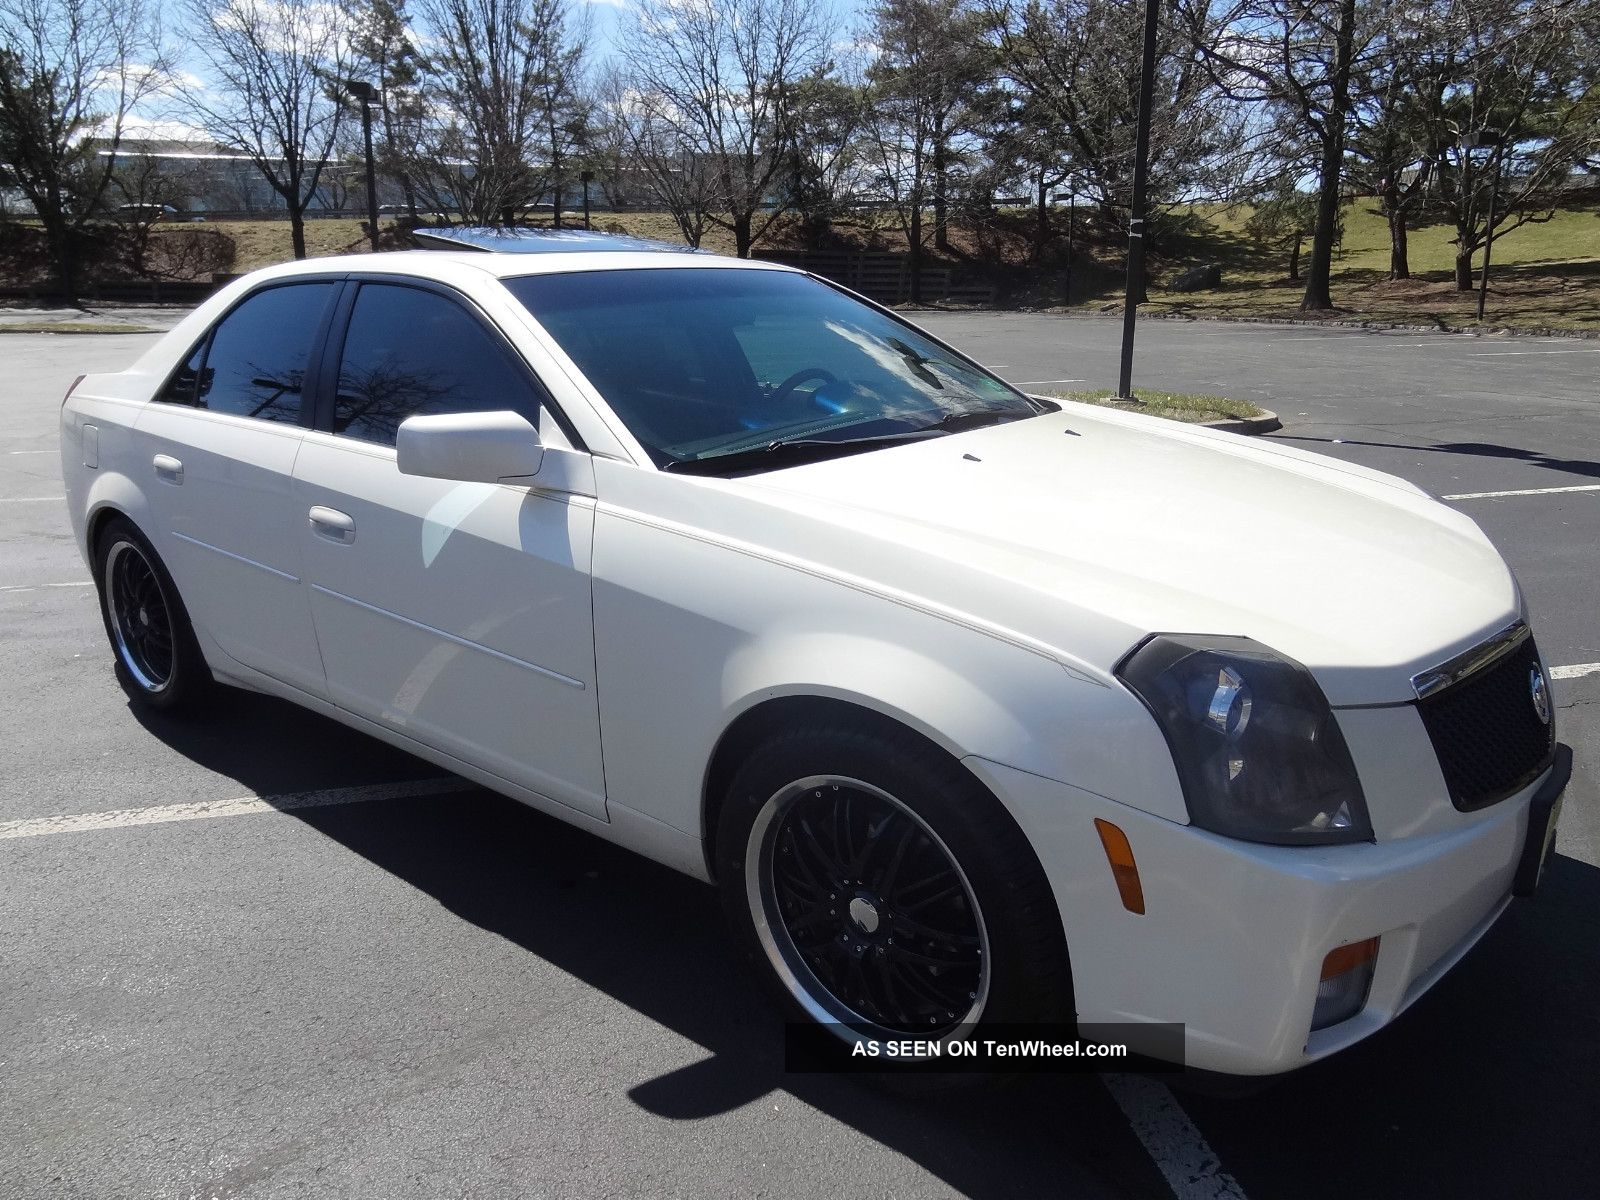 2004 cadillac cts 3 6l specs dallas. Black Bedroom Furniture Sets. Home Design Ideas